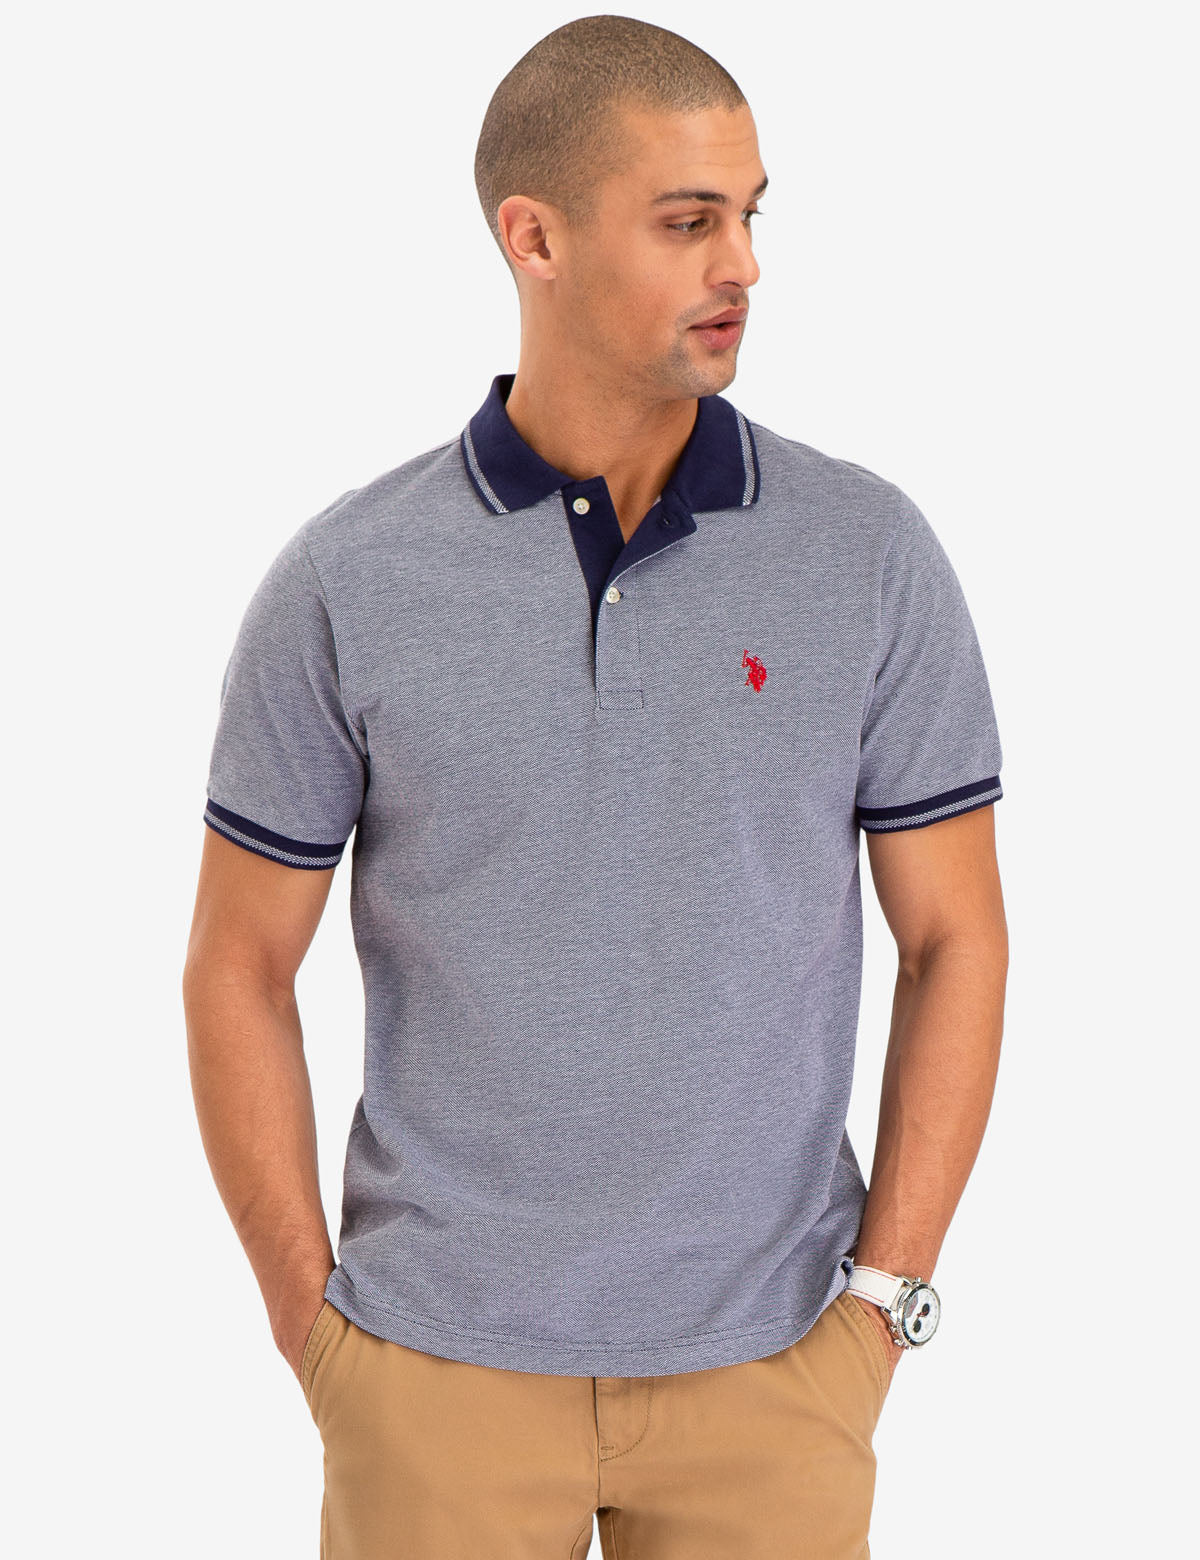 BIRDSEYE CONTRAST COLLAR POLO SHIRT